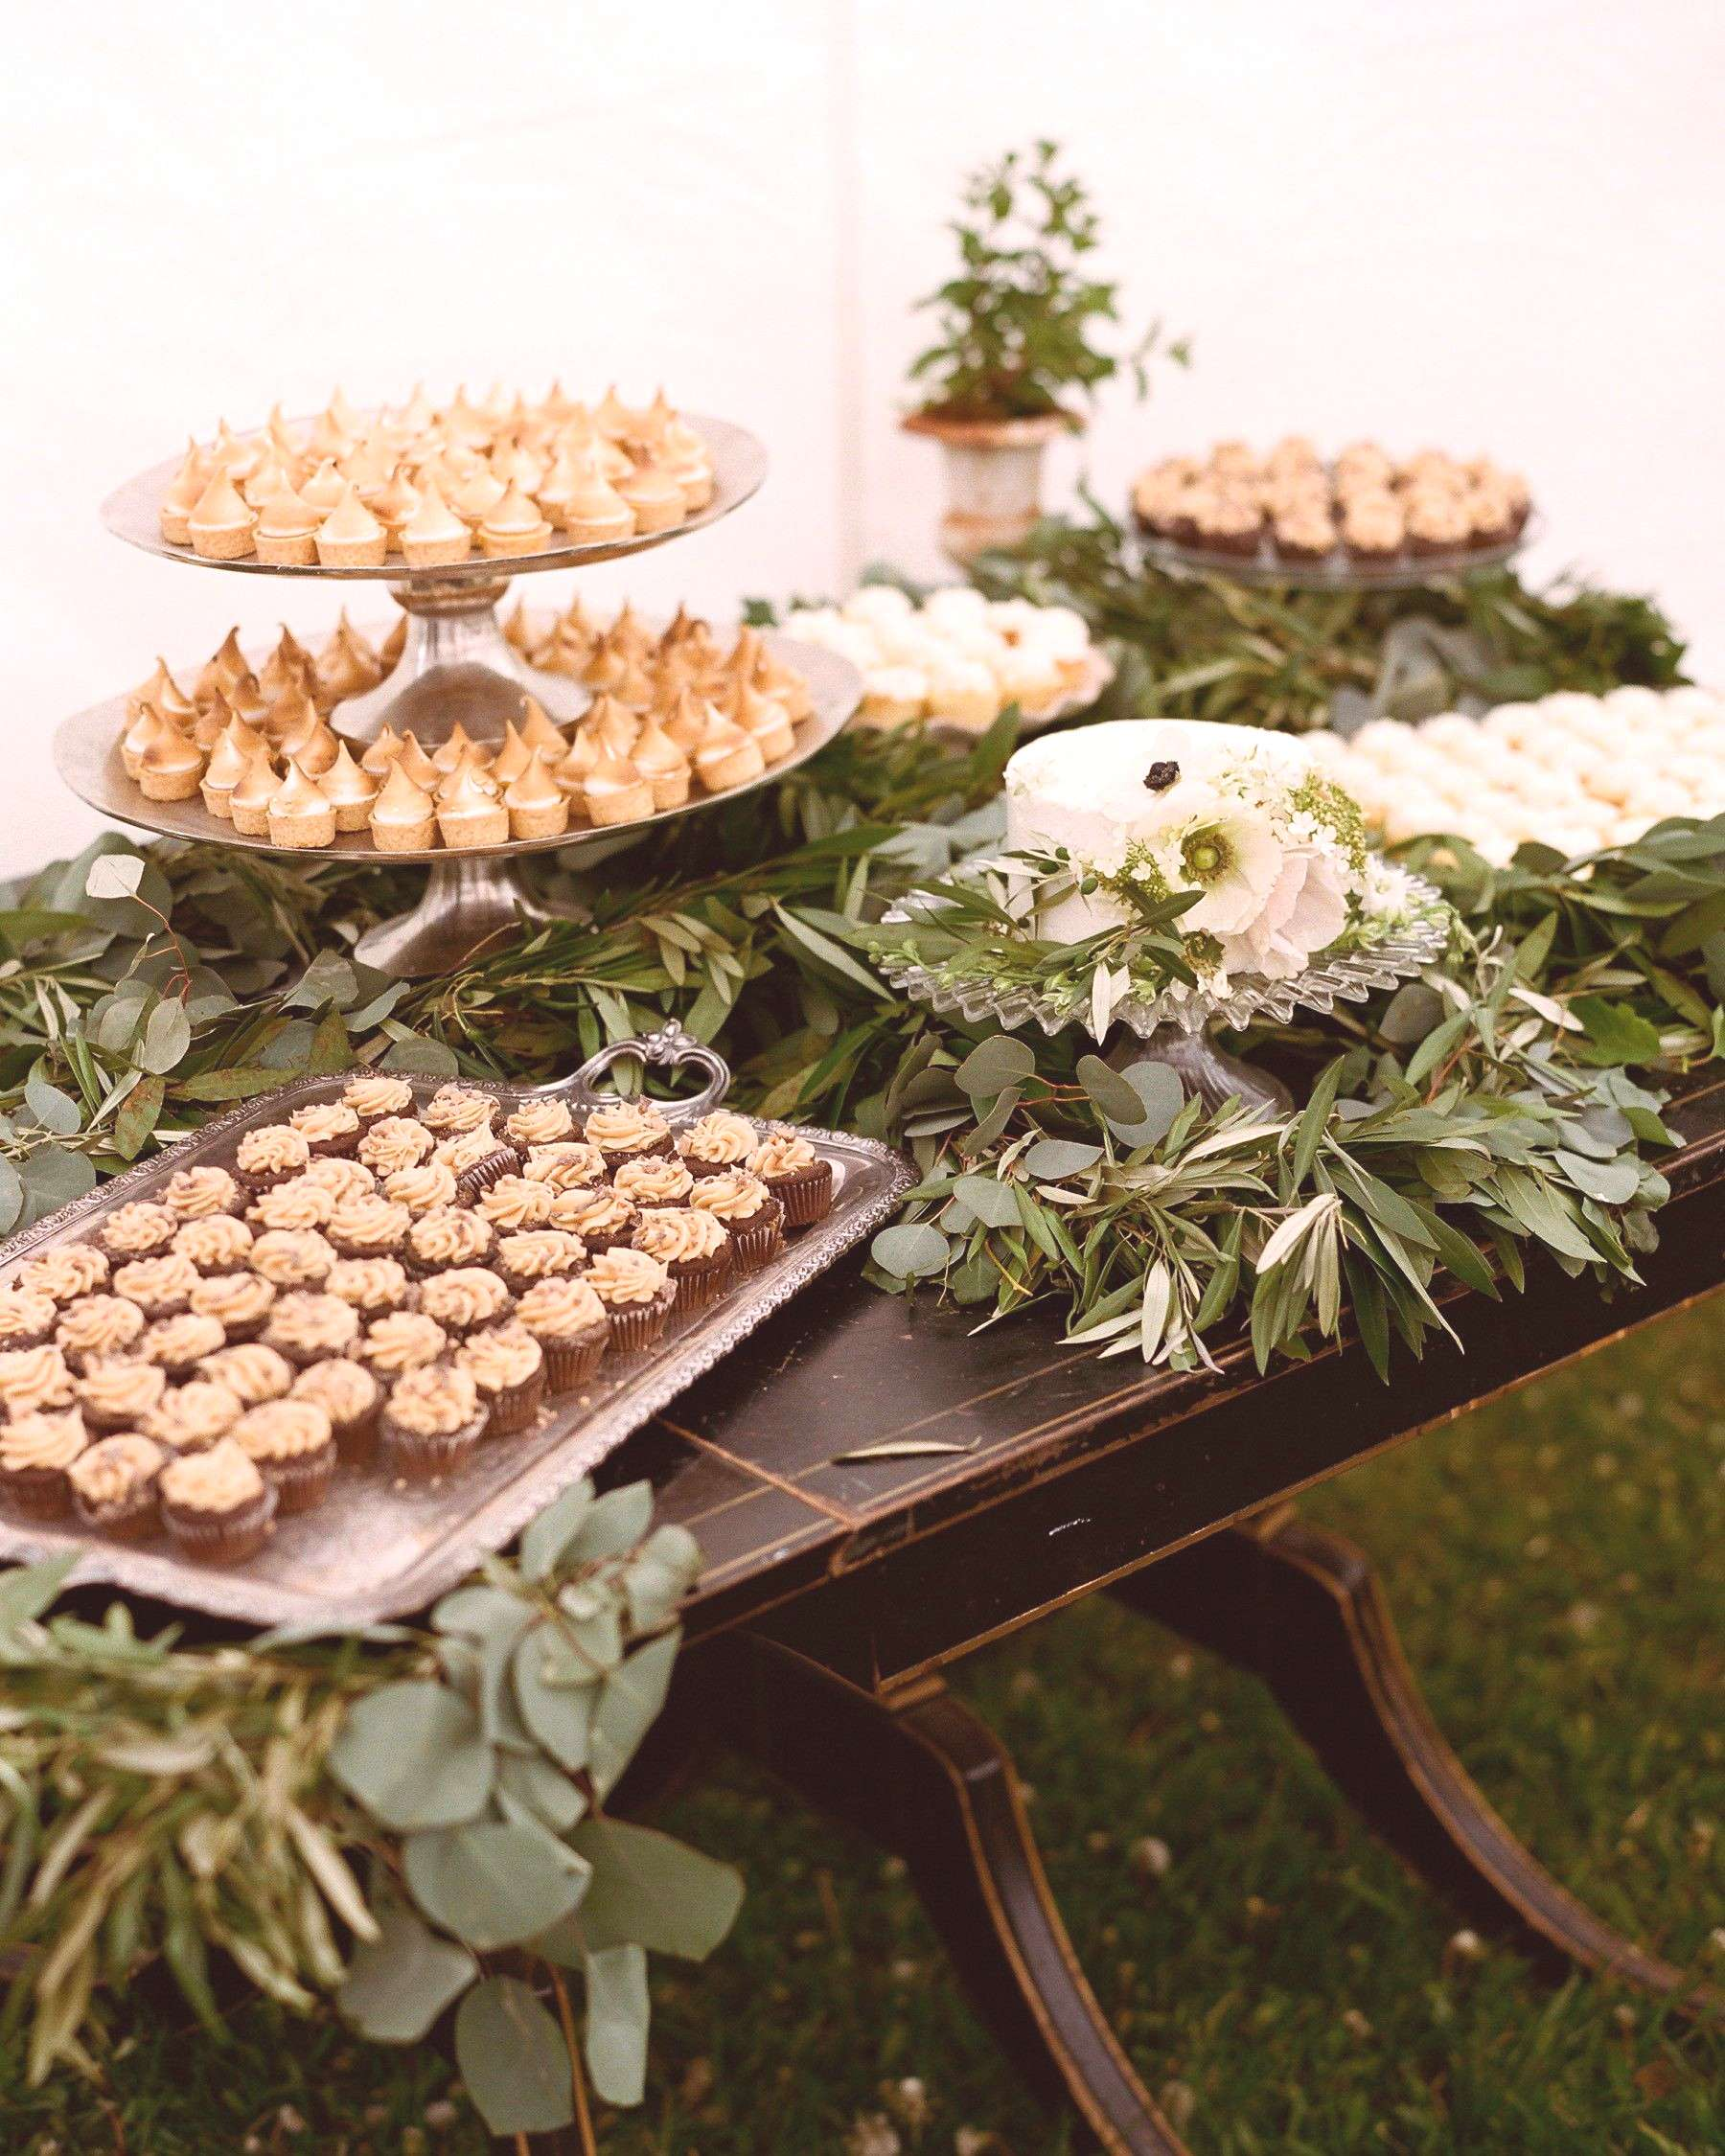 Weve rounded up some of our favorite dessert table ideas from real weddings to help you find all t